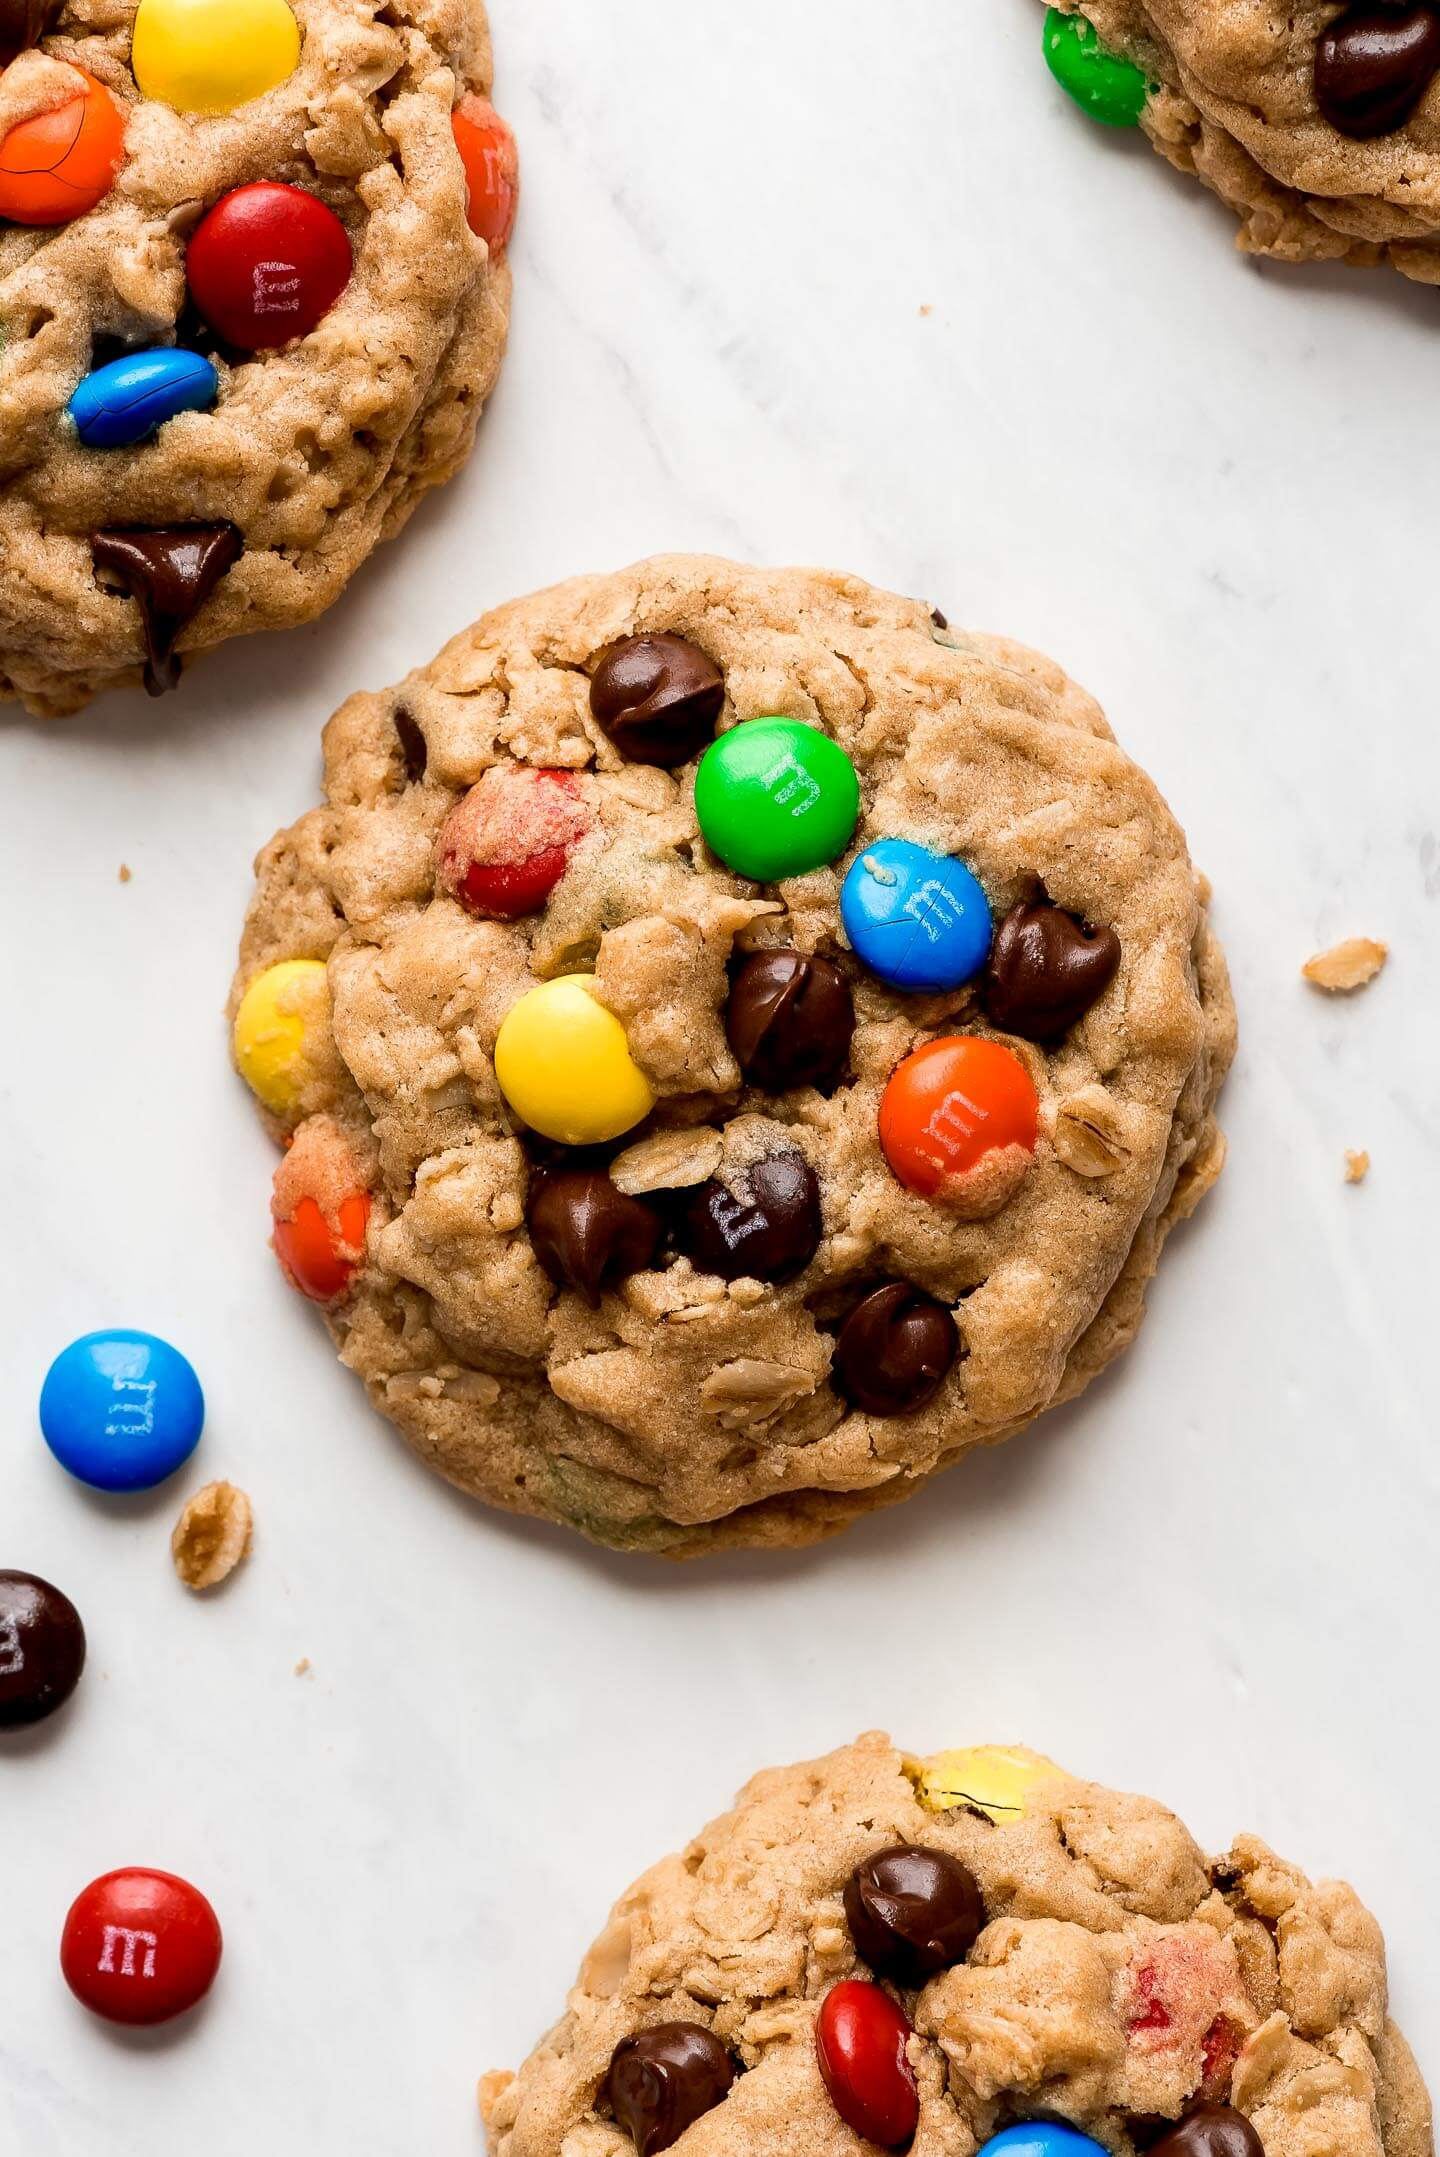 A peanut butter oatmeal cookie studded with M&M's and chocolate chips.